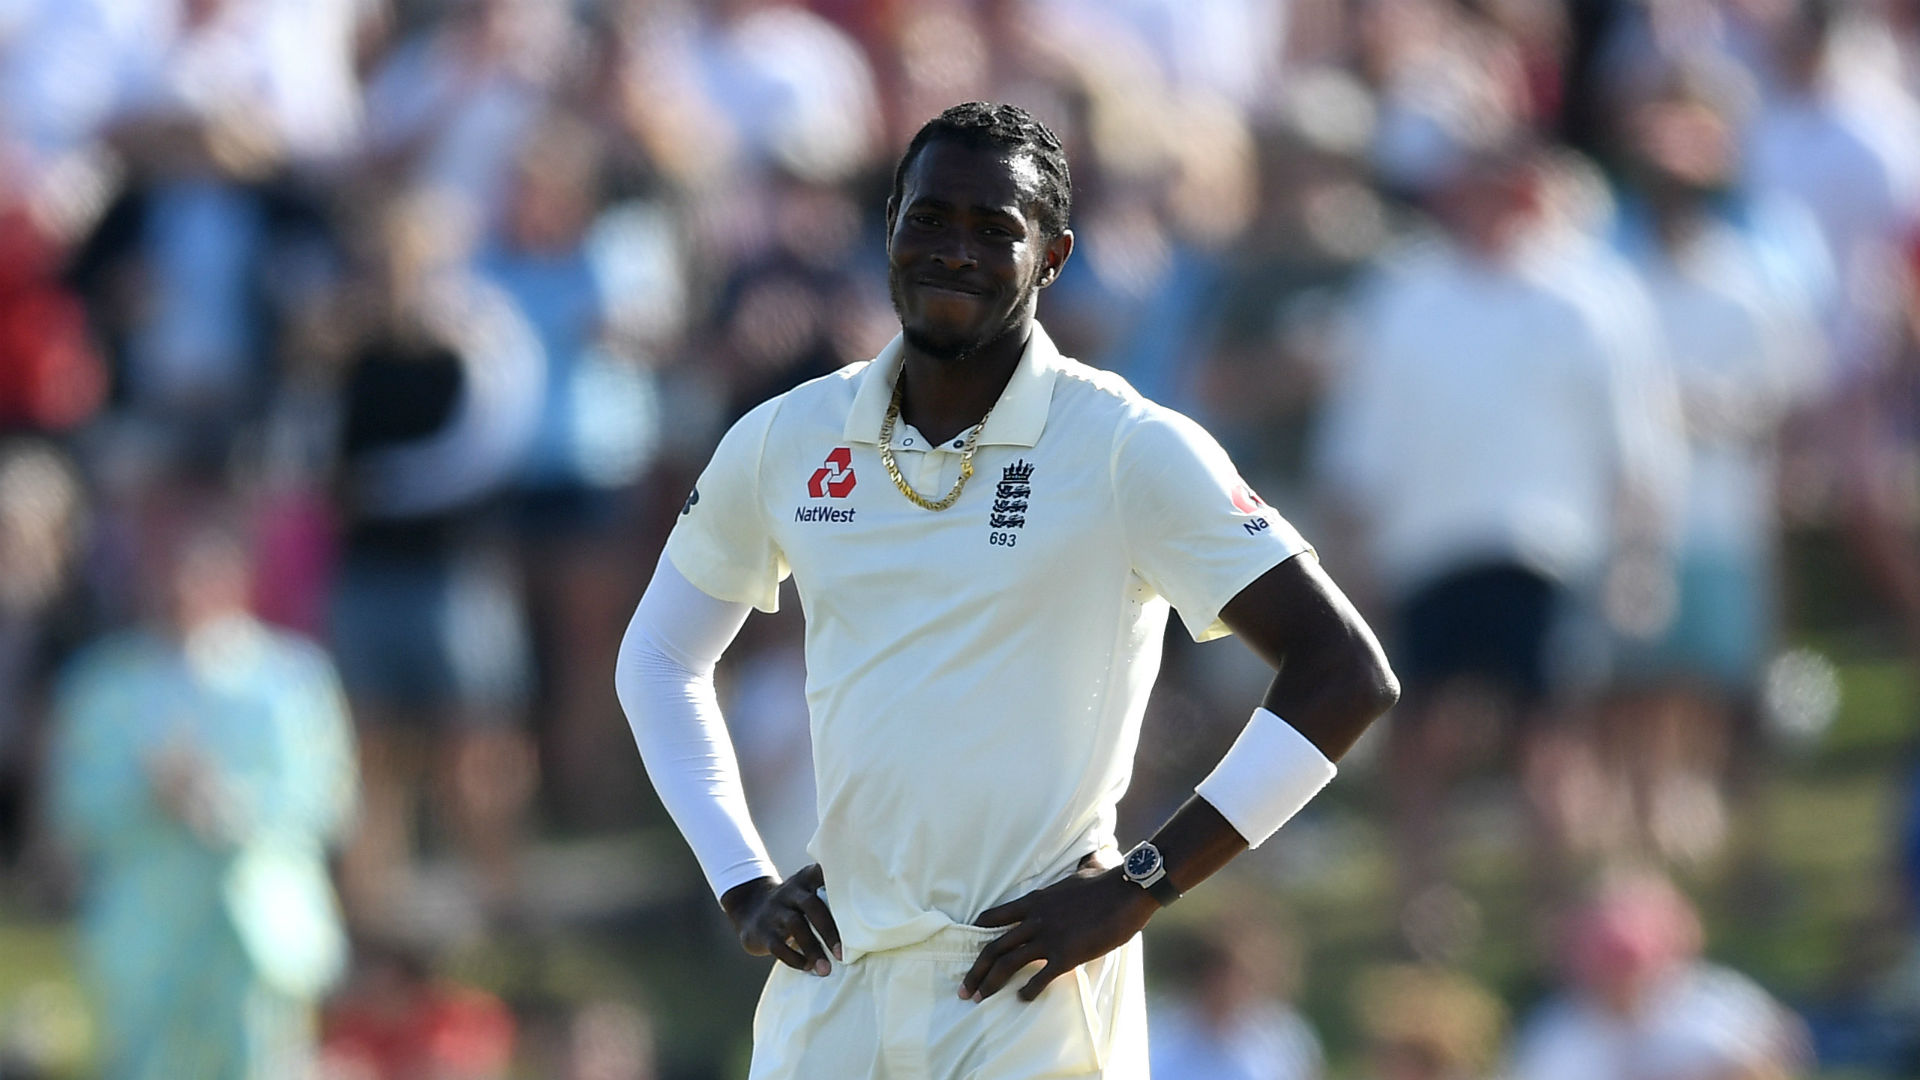 New Zealand Cricket to apologise to Archer after England bowler suffers racist abuse